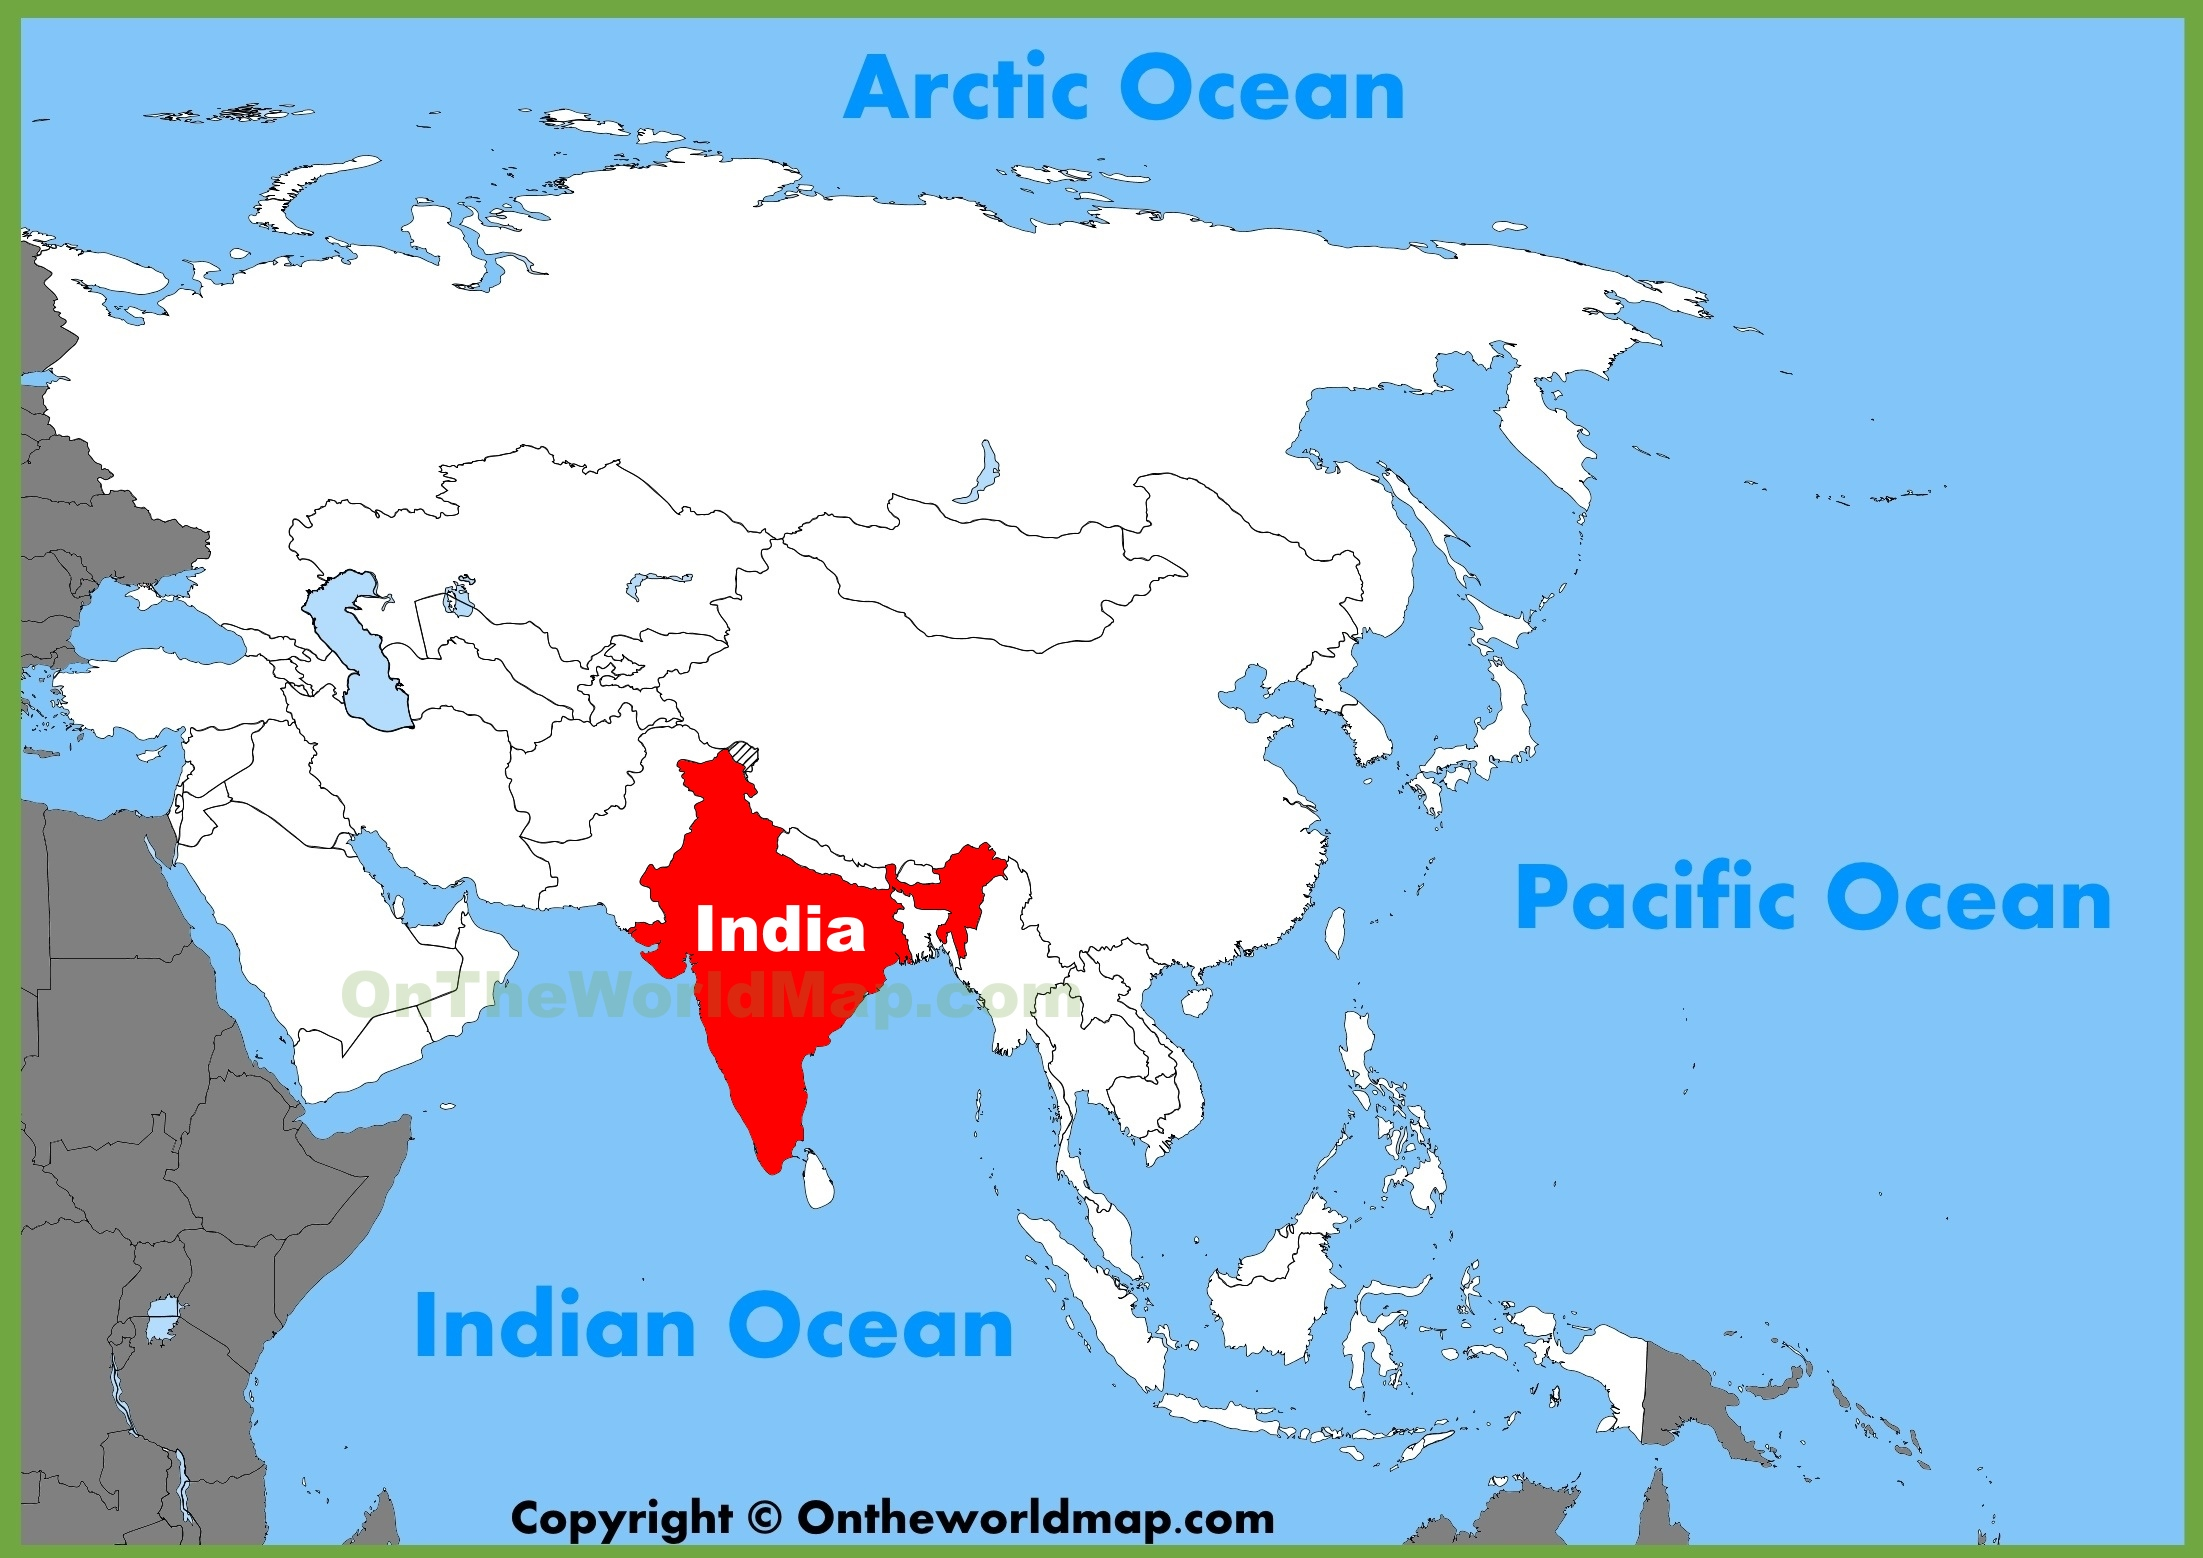 Where Is India On The Map India location on the Asia map